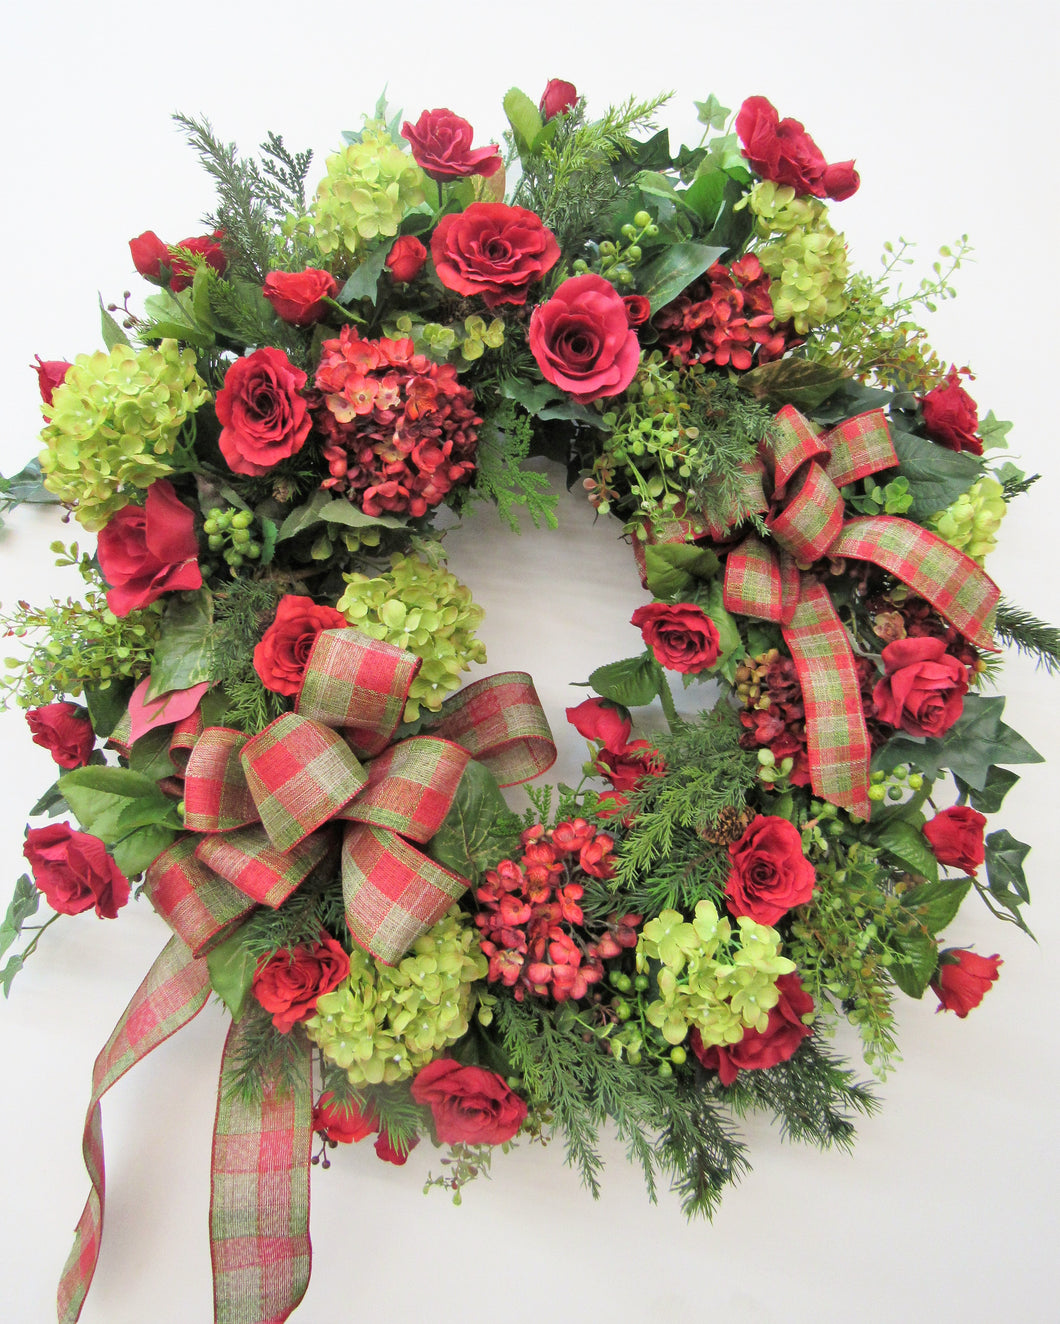 Gallery/Trans29 - April's Garden Wreath